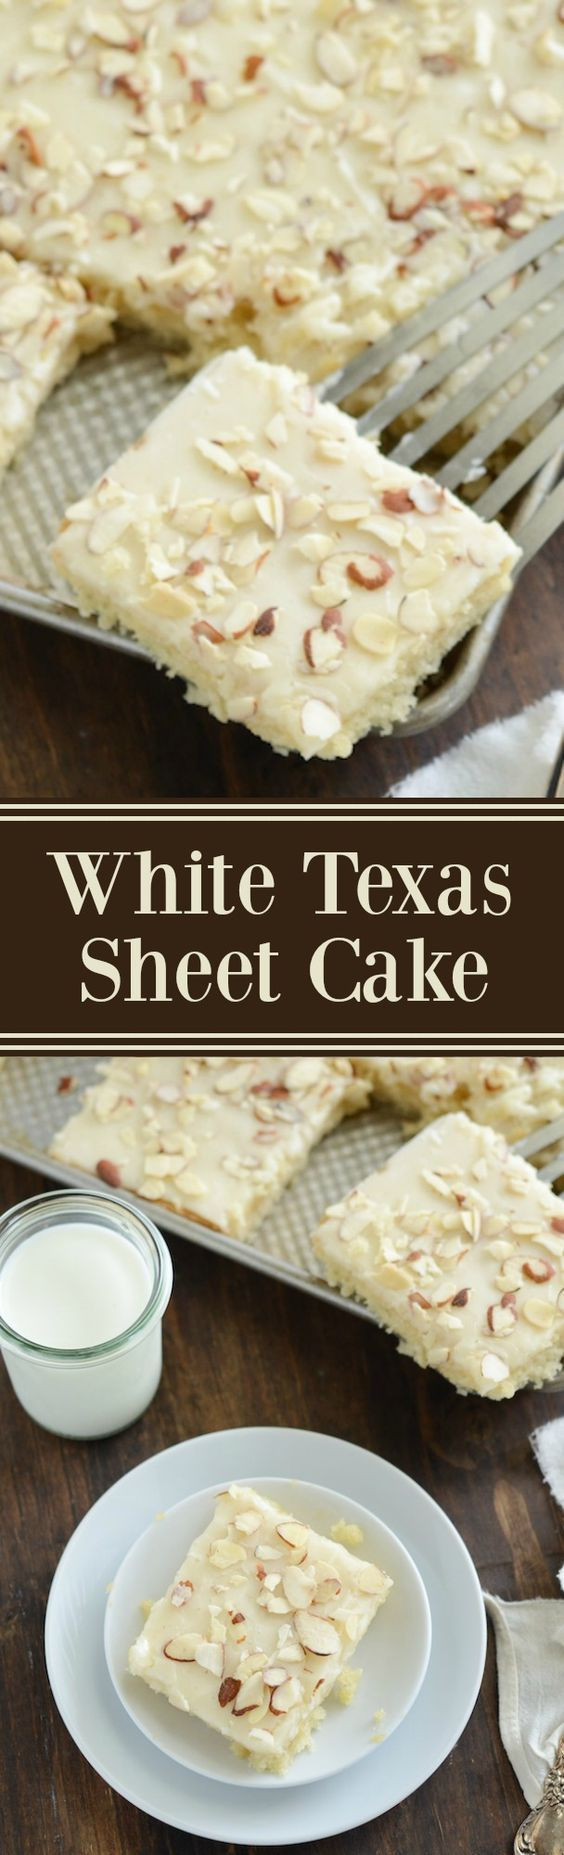 White Texas Almond Sheet Cake Dessert Recipe via The Novice Chef - This perfect buttery cake only takes 30 minutes from start to finish! The Best EASY Sheet Cakes Recipes - Simple and Quick Party Crowds Desserts for Holidays, Special Occasions and Family Celebrations #sheetcakerecipes #sheetcake #sheetcakes #cakerecipes #cakes #dessertforacrowd #partydesserts #christmasdesserts #thanksgivingdesserts #newyearseve #birthdaydesserts